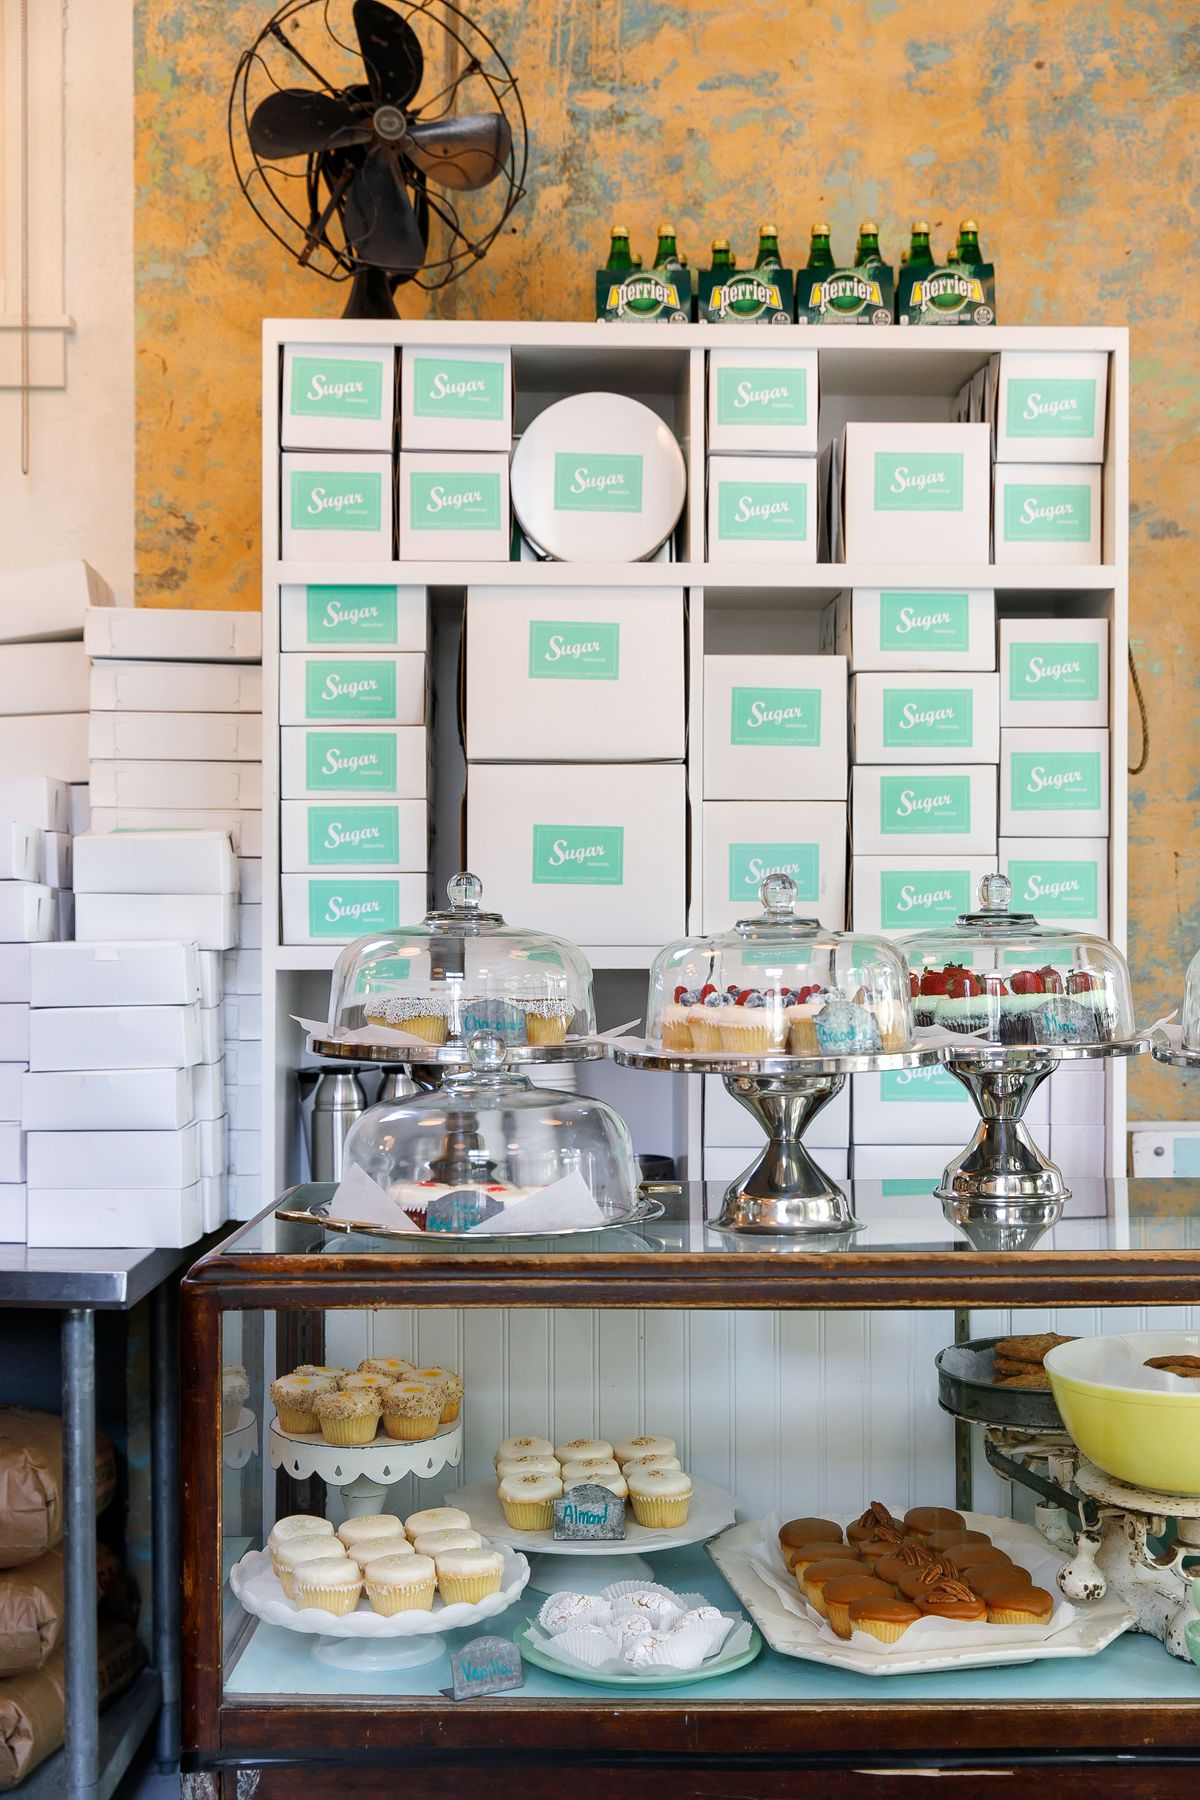 The interior of a bakery. In the foreground is a glass bakery case with cakes and baked goods on display. In the background is a shelving unit with many bakery boxes stacked. An electric fan sits on top of the shelving unit.